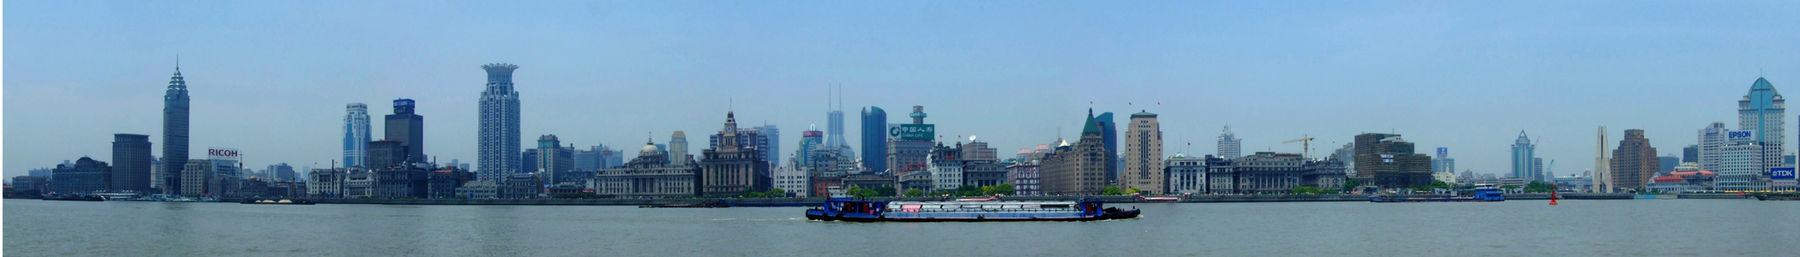 Downtown, seen from across the river